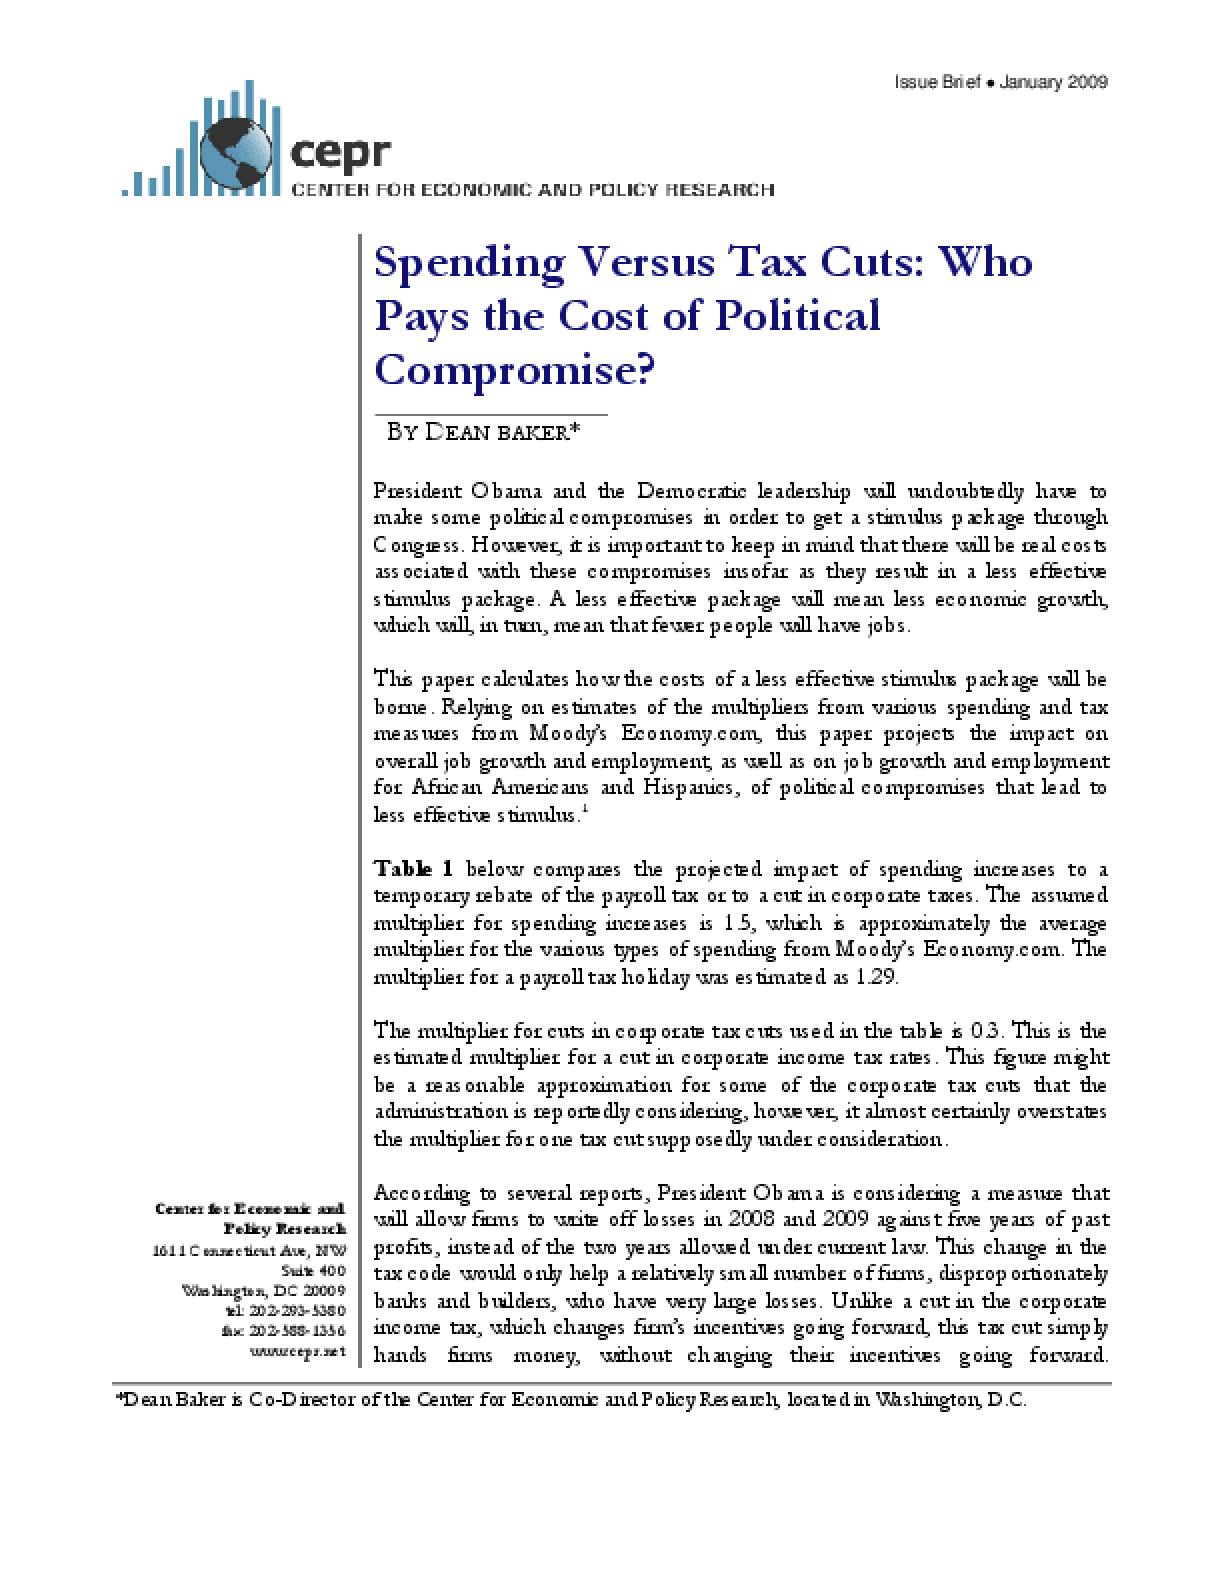 Spending Versus Tax Cuts: Who Pays the Cost of Political Compromise?